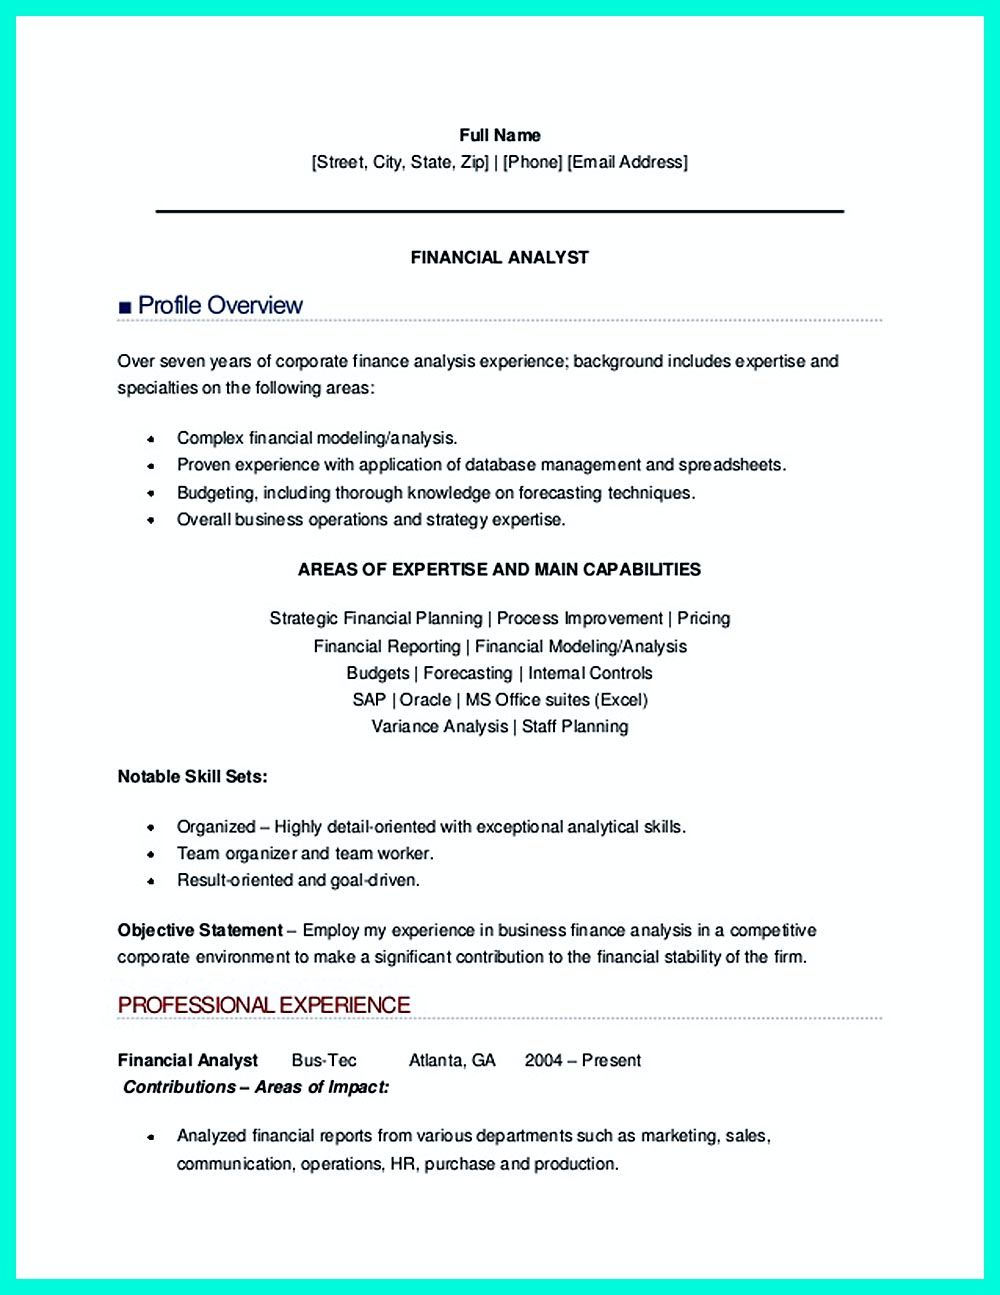 Pin On Resume Sample Template And Format Pinterest Resume Format